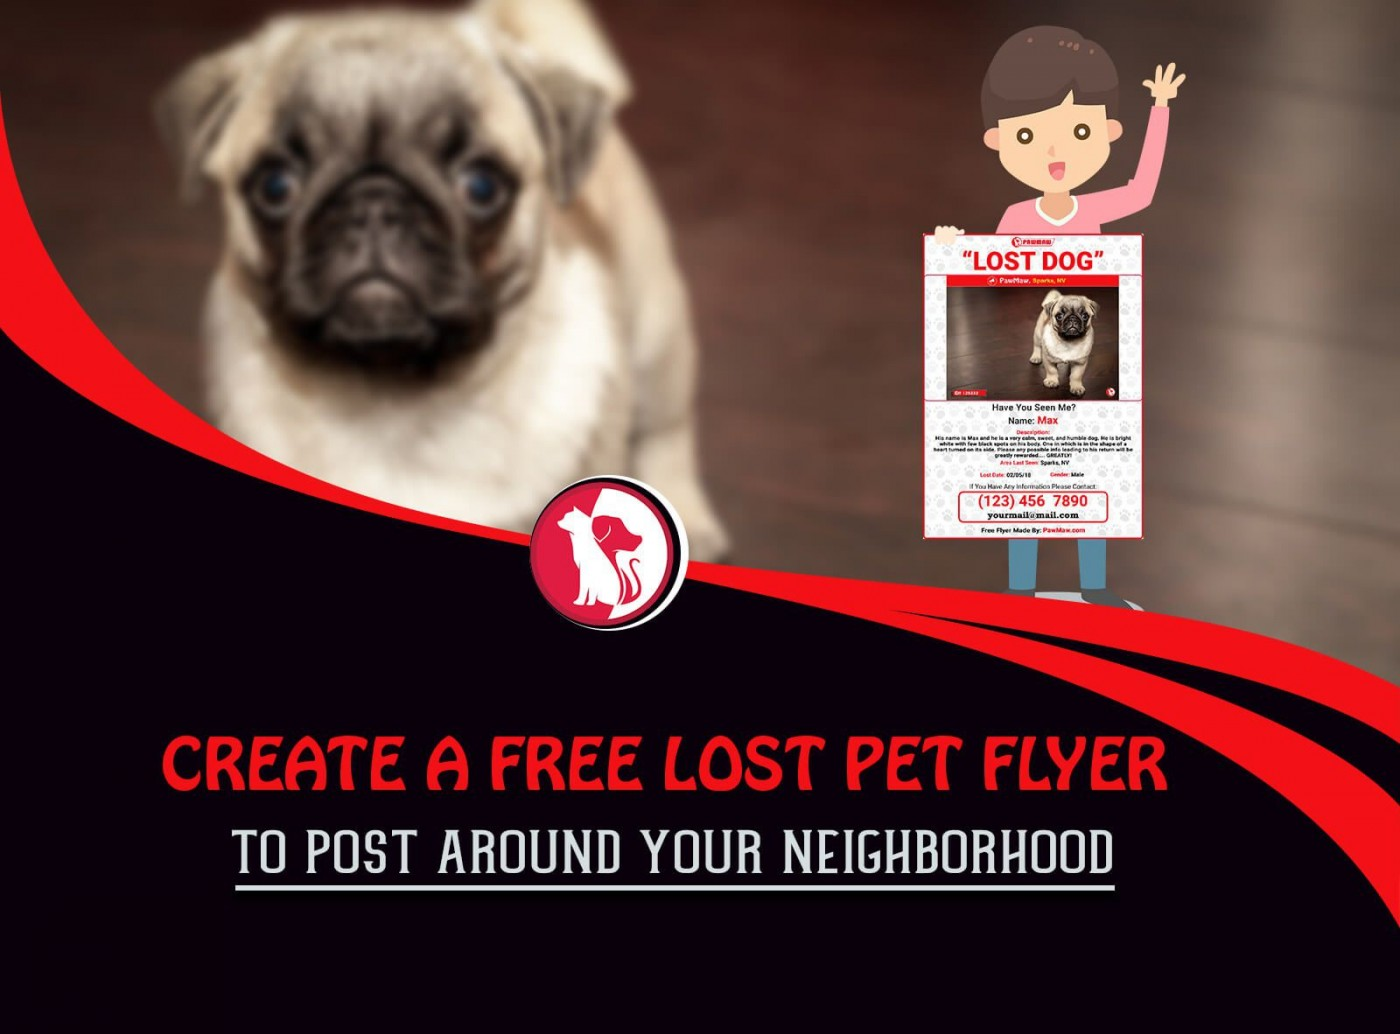 002 Remarkable Lost Dog Flyer Template Concept  Printable Free Missing Pet1400